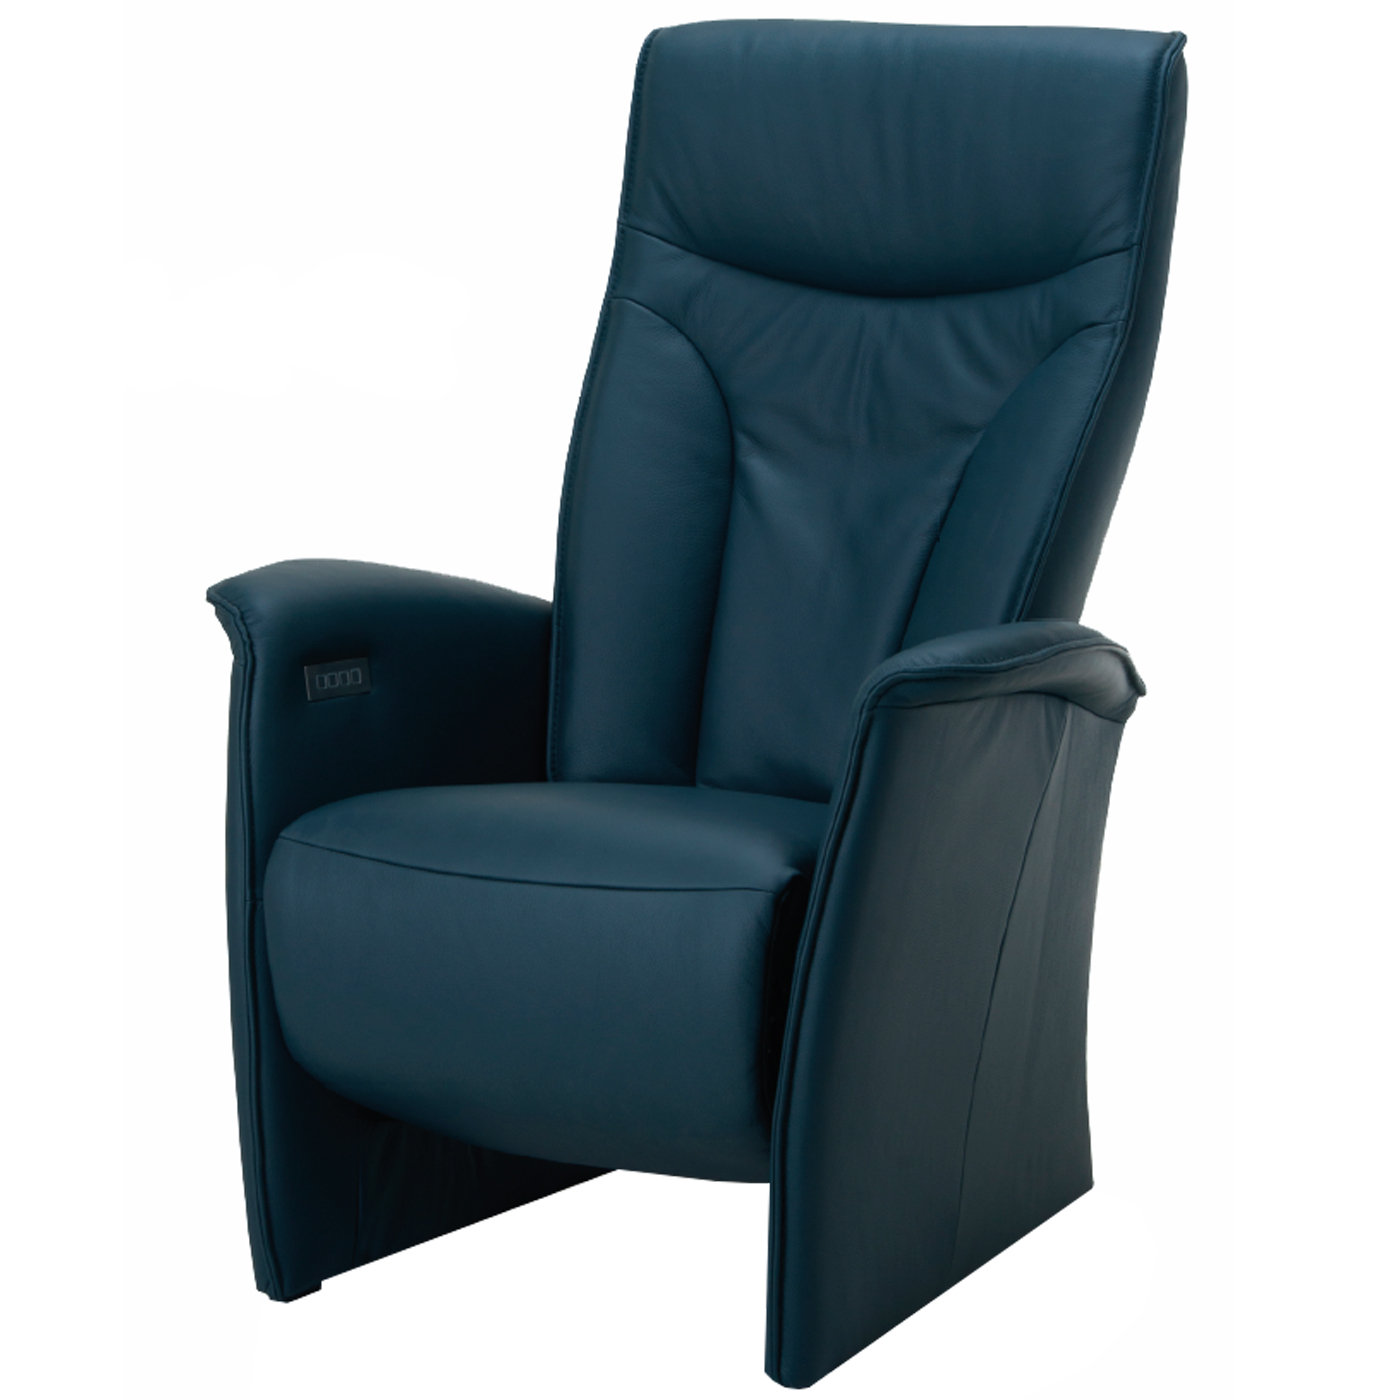 Magic MG-B01 relaxfauteuil